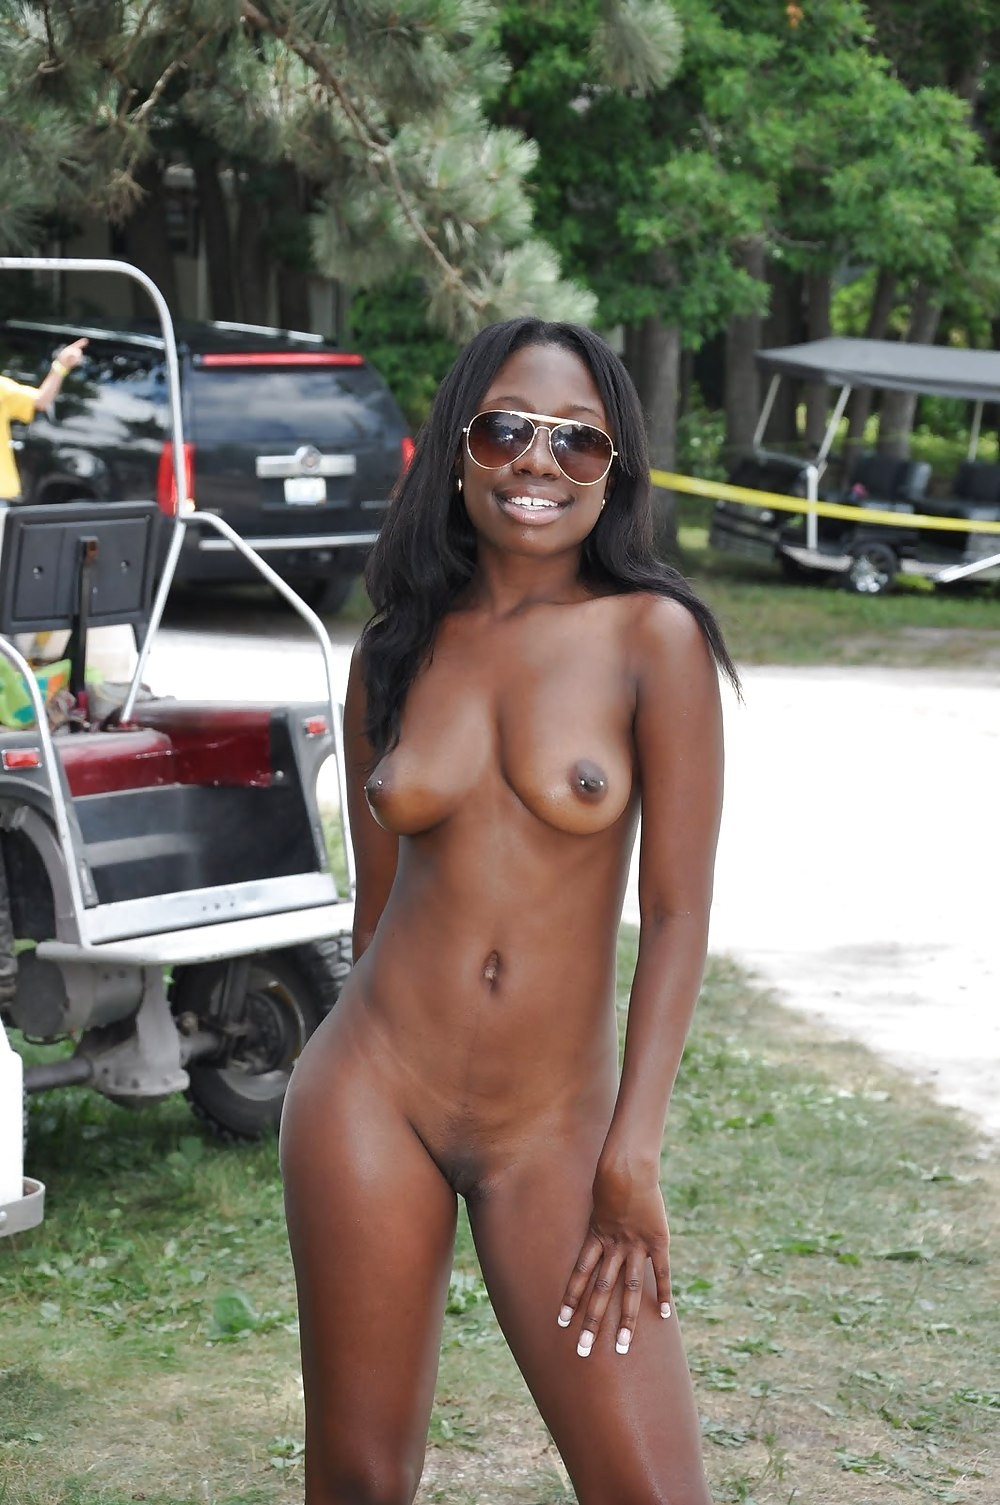 Ugly redhead black female public nudity amatuer